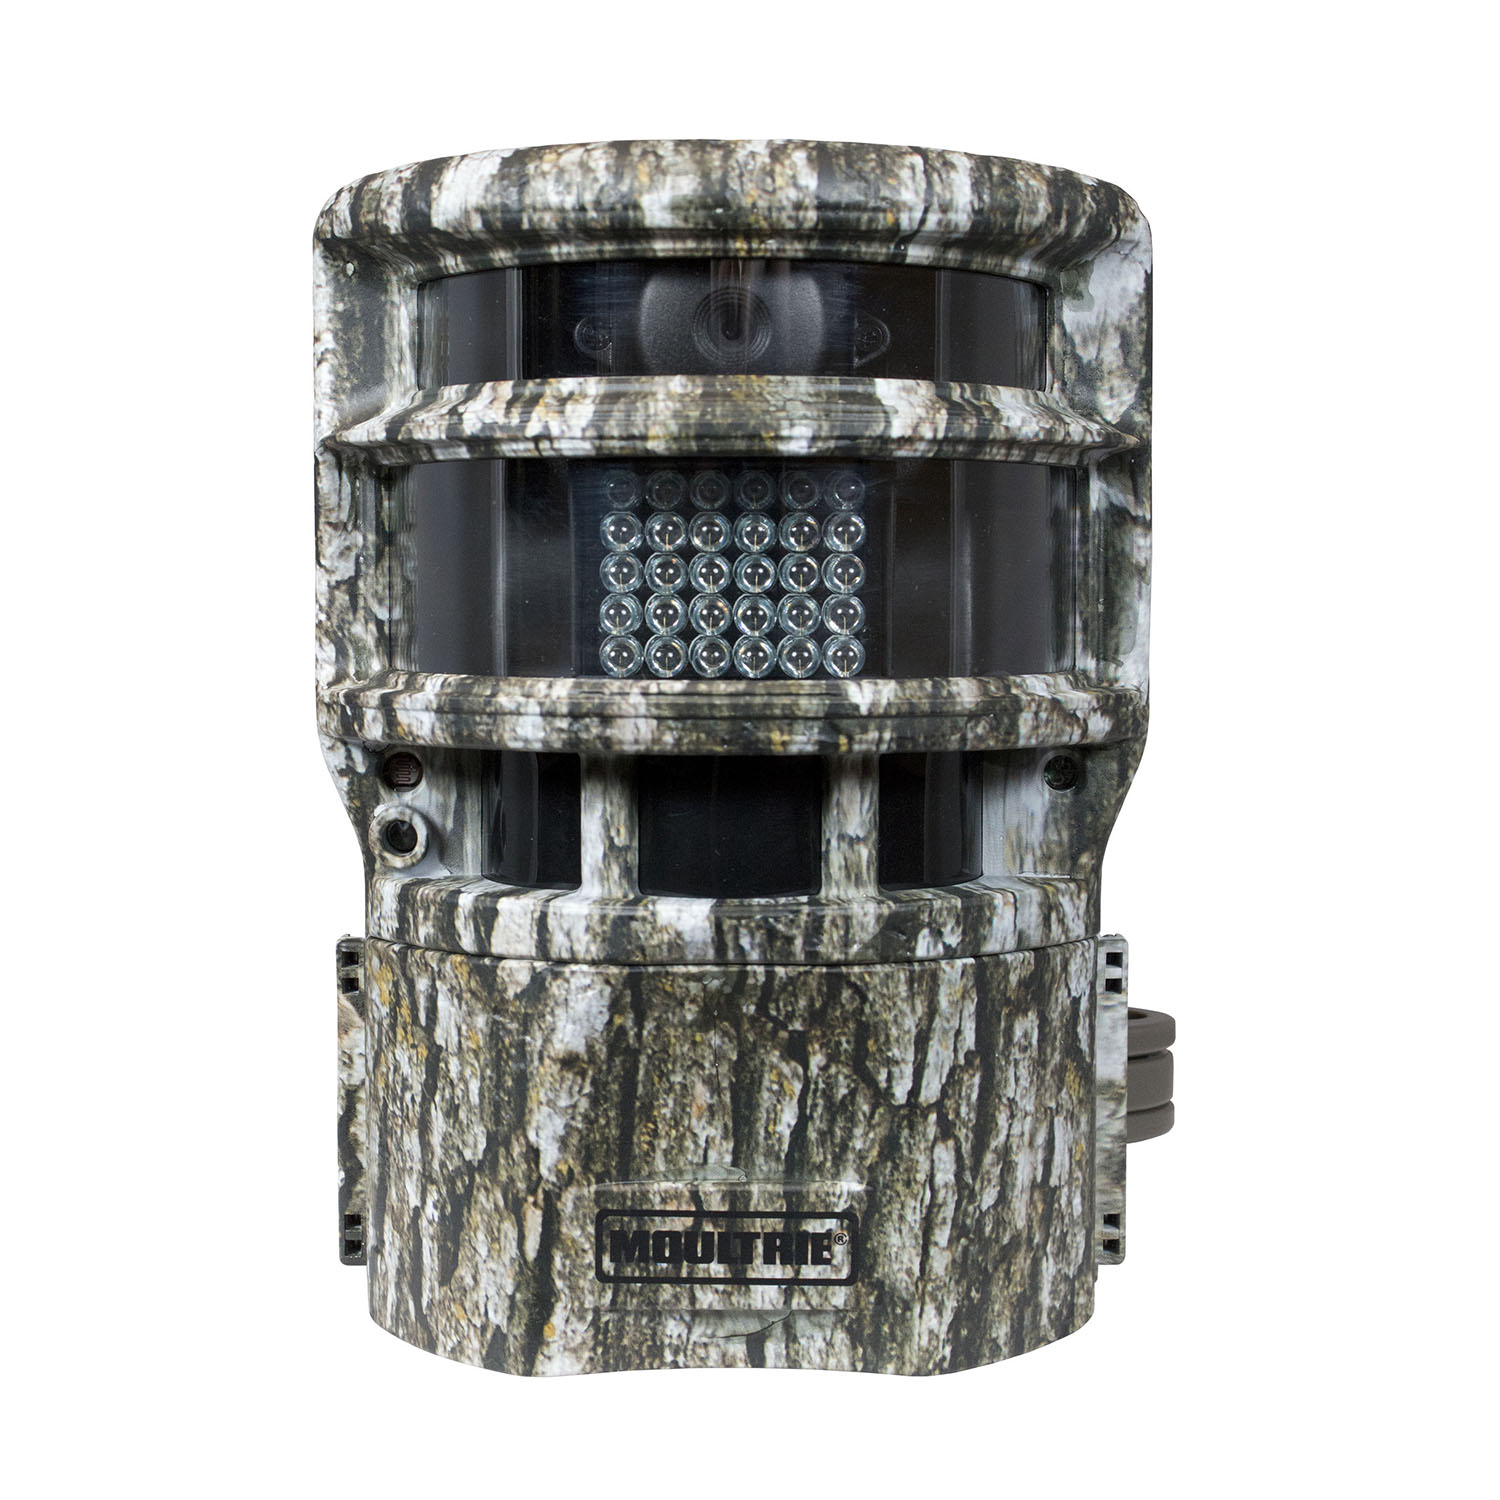 Moultrie: Panoramic 150:Game Camera   The Panoramic 150 is a specialty game camera for capturing high quality, super-wide digital images of deer and other wild game on your land or hunting camp. With up to a 70-foot night range, this 8 megapixel infrared panoramic game camera has three motion sensors to cover a super wide, 150-degree detection angle. The Silent-Slide lens rotates to take photos or videos whenever motion is detected without spooking game, while the Illumi-Night sensor provides bright, clear nighttime images. The camera has five operational modes: infrared triggered-game camera, time-lapse plot camera—plot camera by day, motion detect camera at night—HD video day and night. The SD memory card slot accommodates up to 32GB. The camera is also password protected.  MSRP: $259    www.moultriefeeders.com